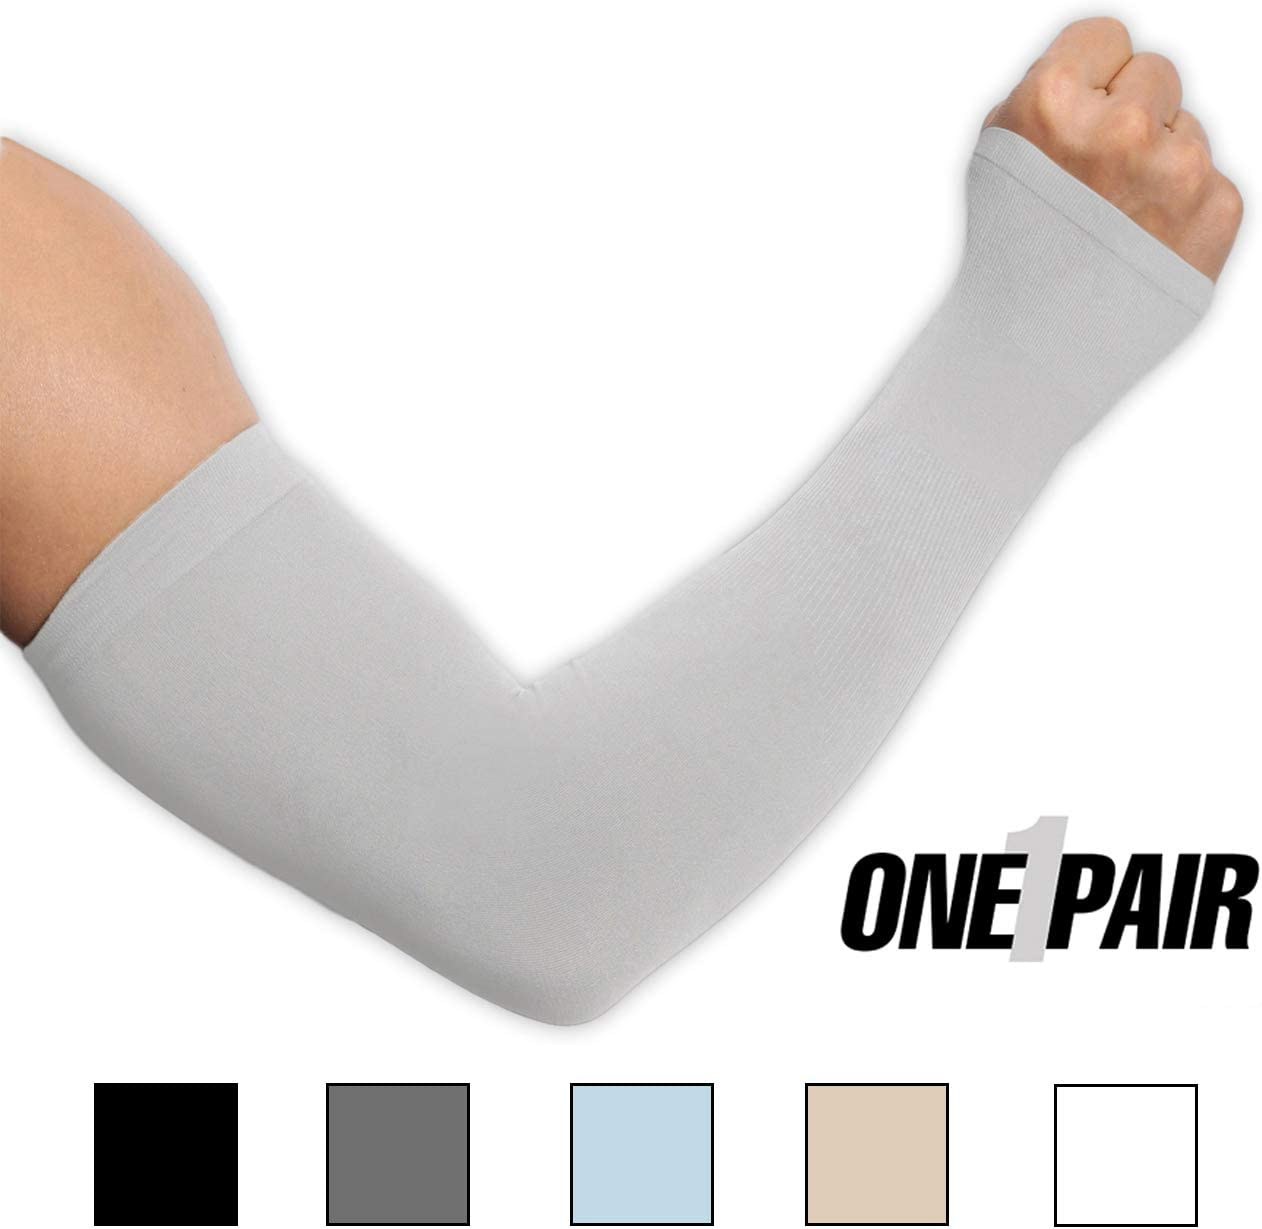 UV Protection Cooling Arm Sleeves - UPF 50 Compression Sun Sleeves with Hand Cover for Men & Women for Running, Cycling, Fishing, Golf, Baseball & Basketball - Skin Cancer Foundation Recommended